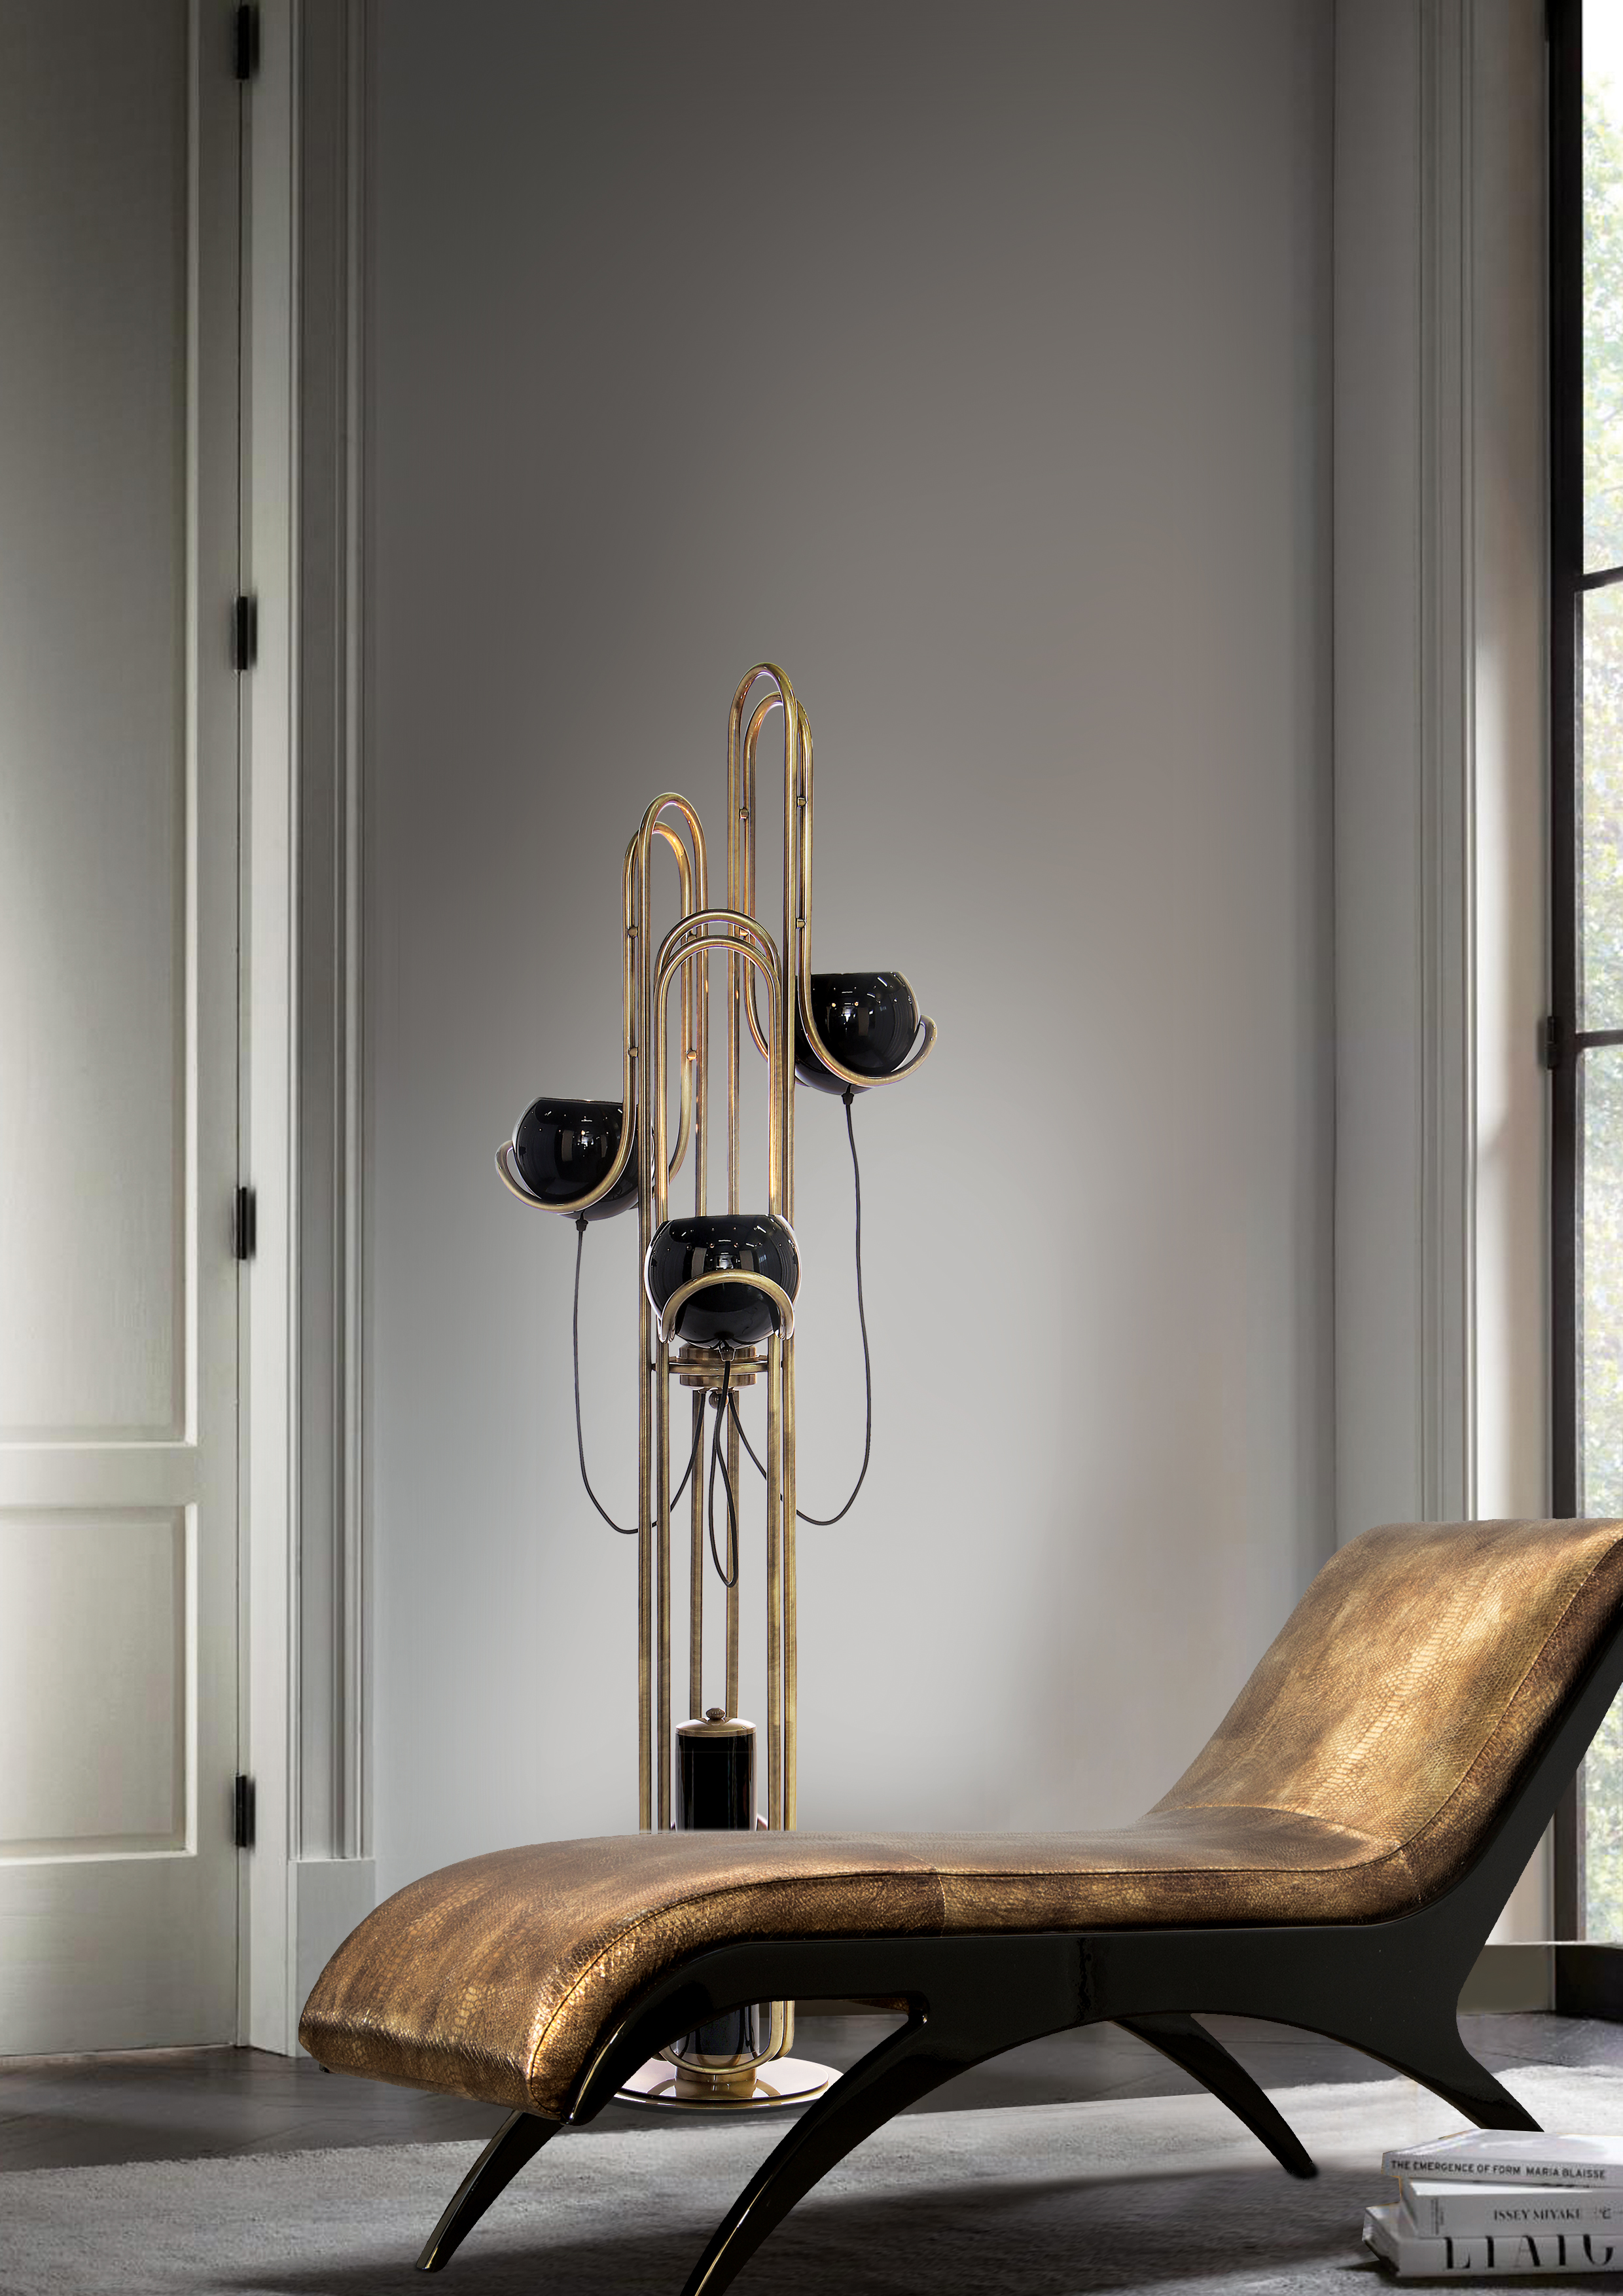 Bright Ideas Modern Floor Lamp Inspired in The Golden Years of Space 2 modern floor lamp Bright Ideas: Modern Floor Lamp Inspired in The Golden Years of Space Bright Ideas Modern Floor Lamp Inspired in The Golden Years of Space 3